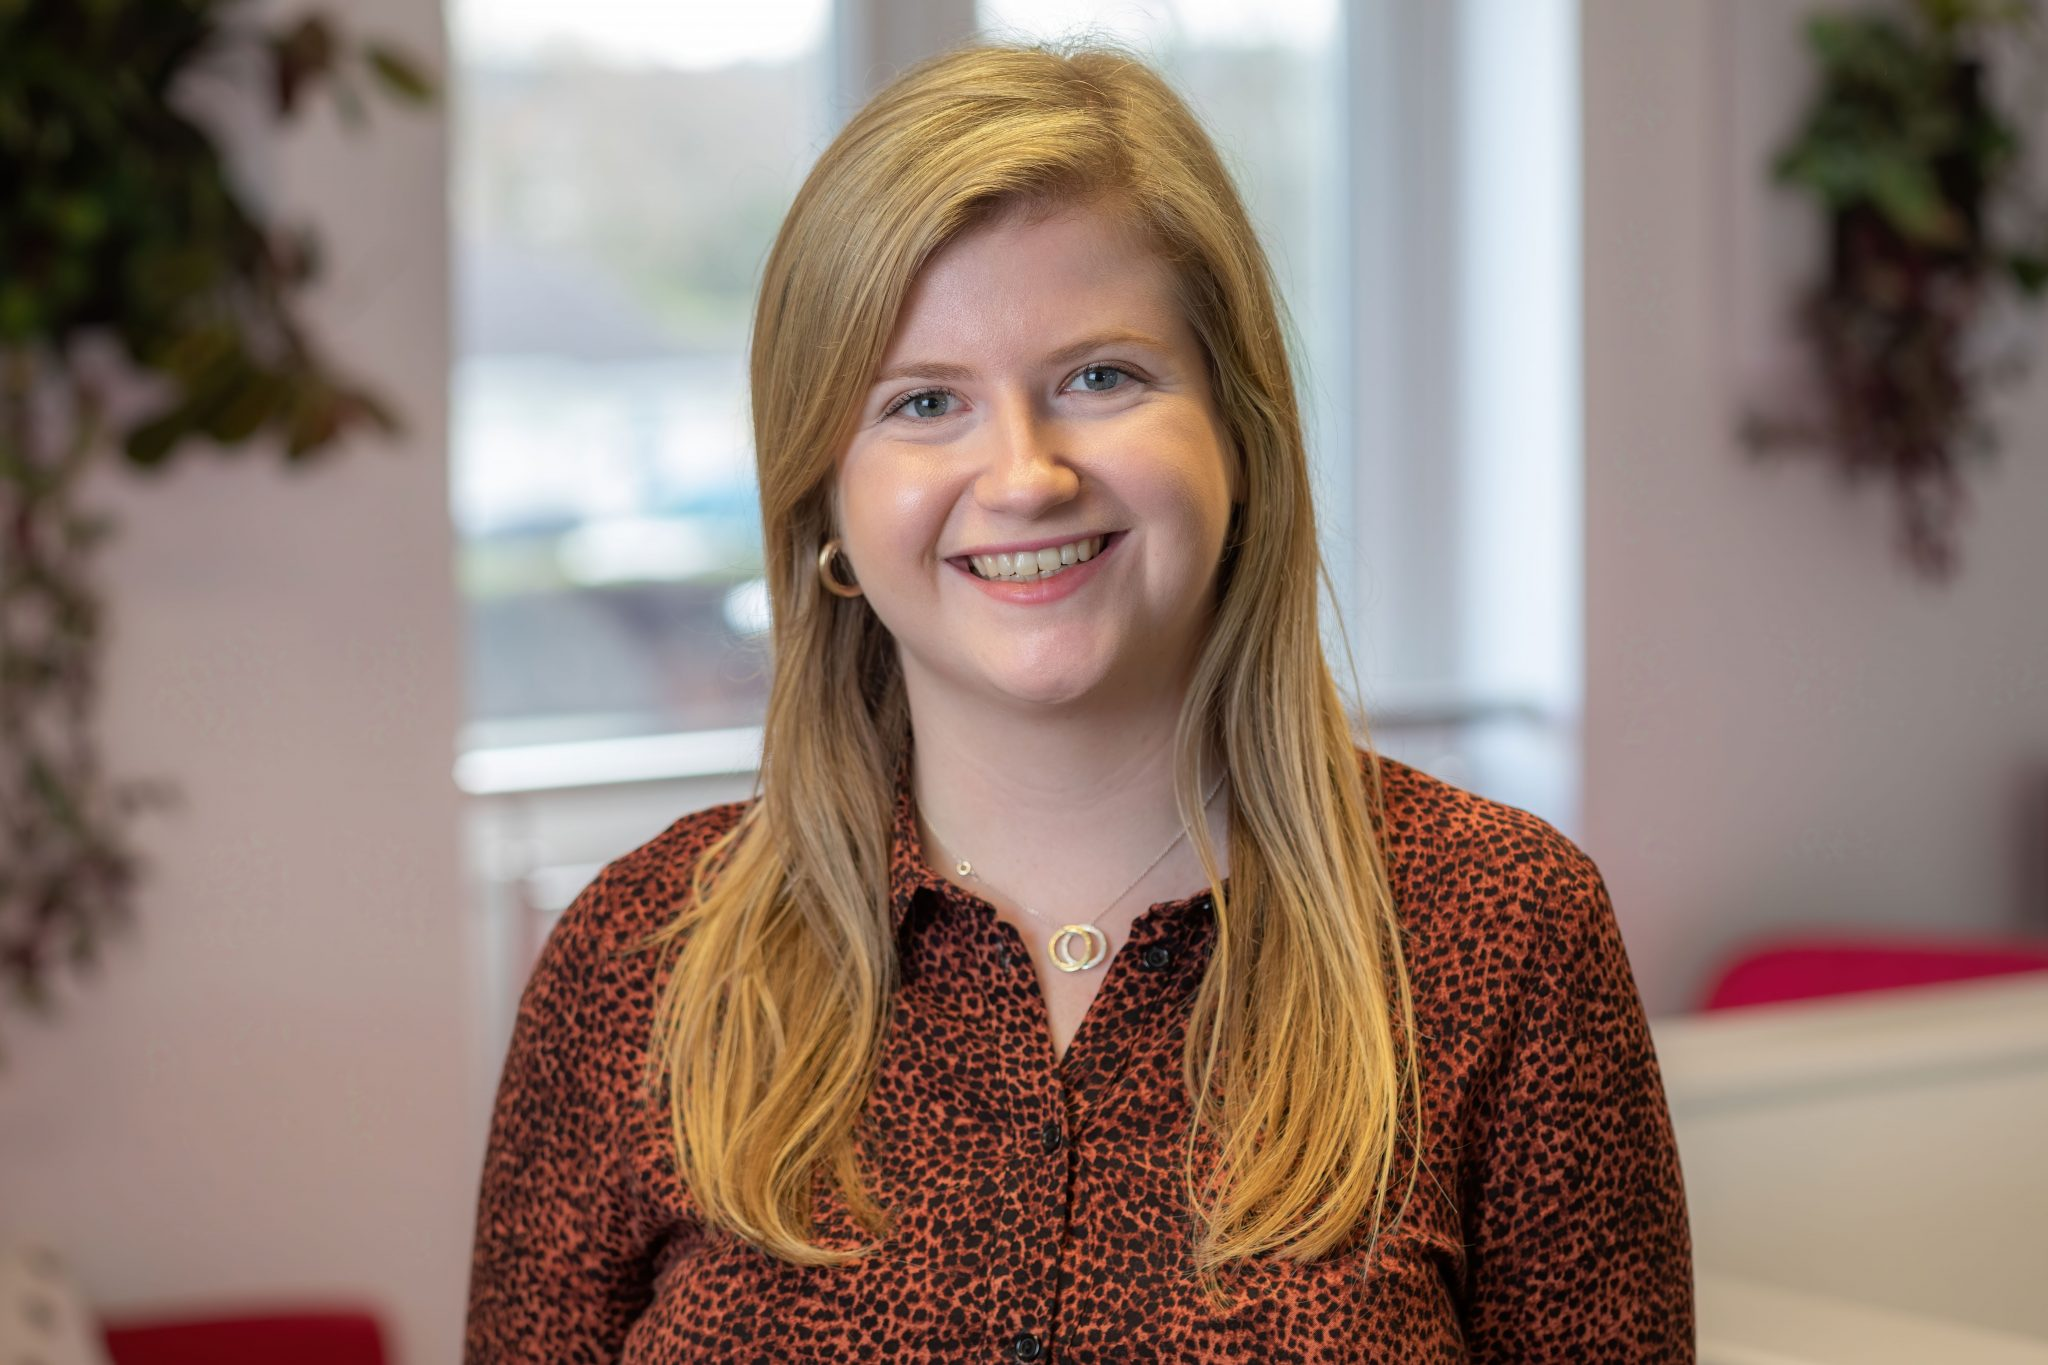 From intern to account manager; Laura returns to Orchard